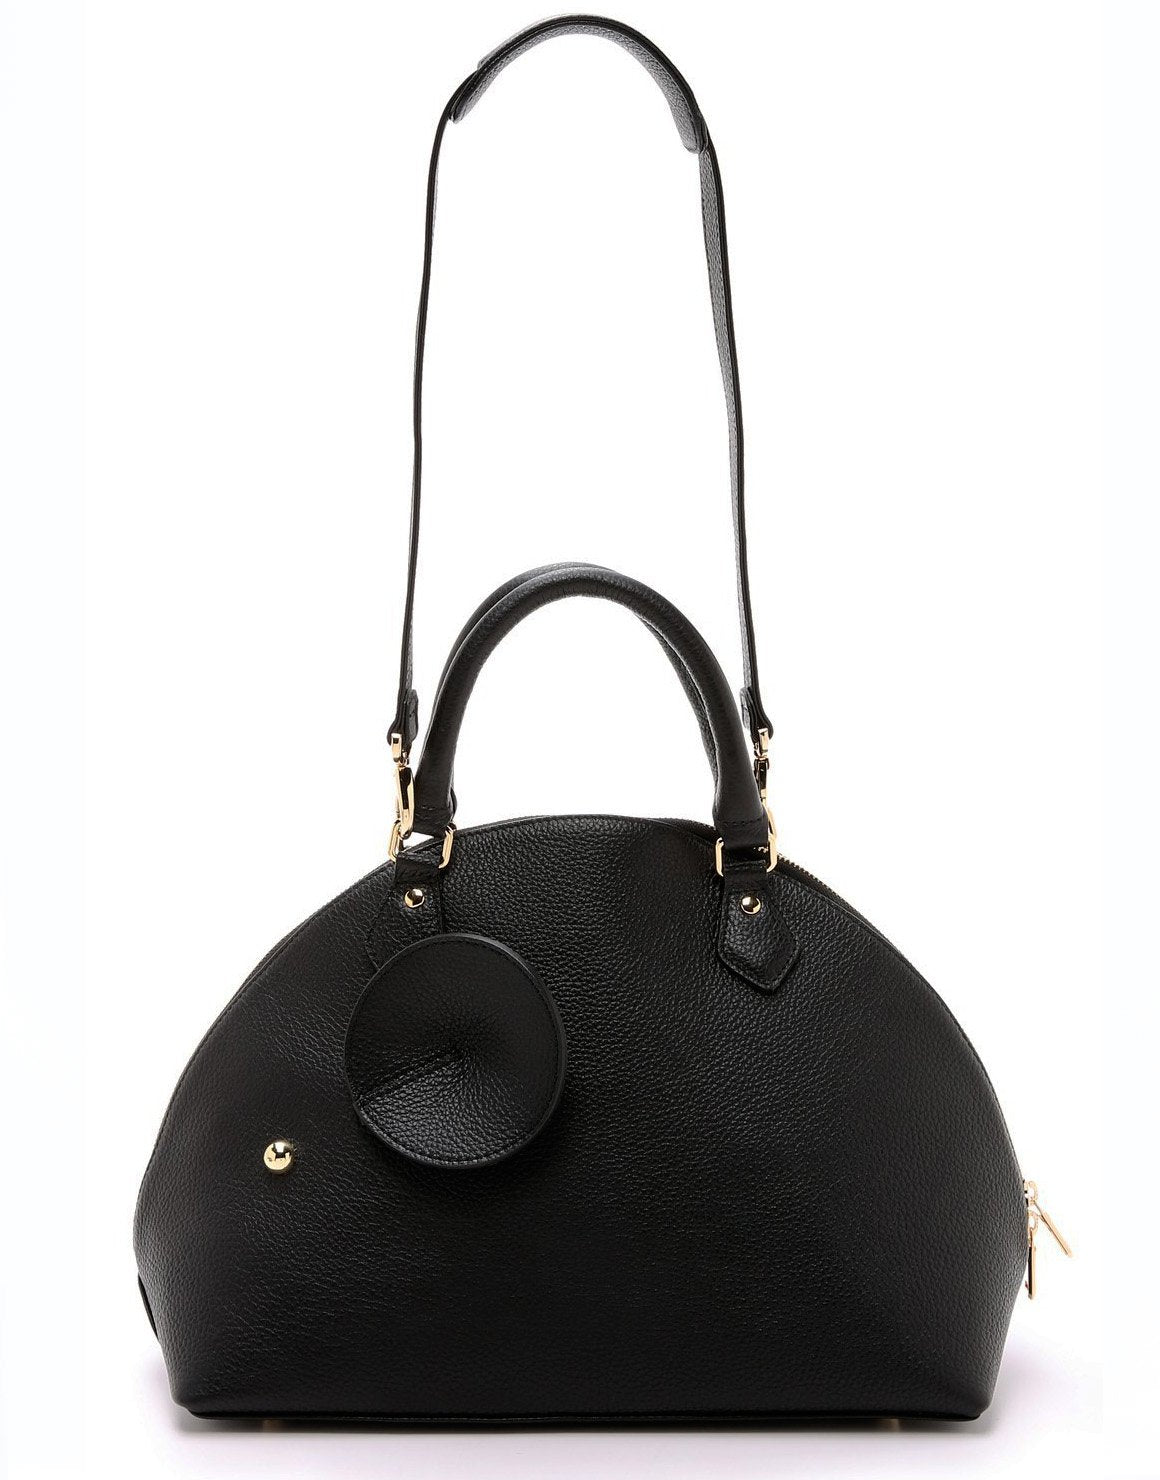 Large Guinea Pig Handbag by Borboleta